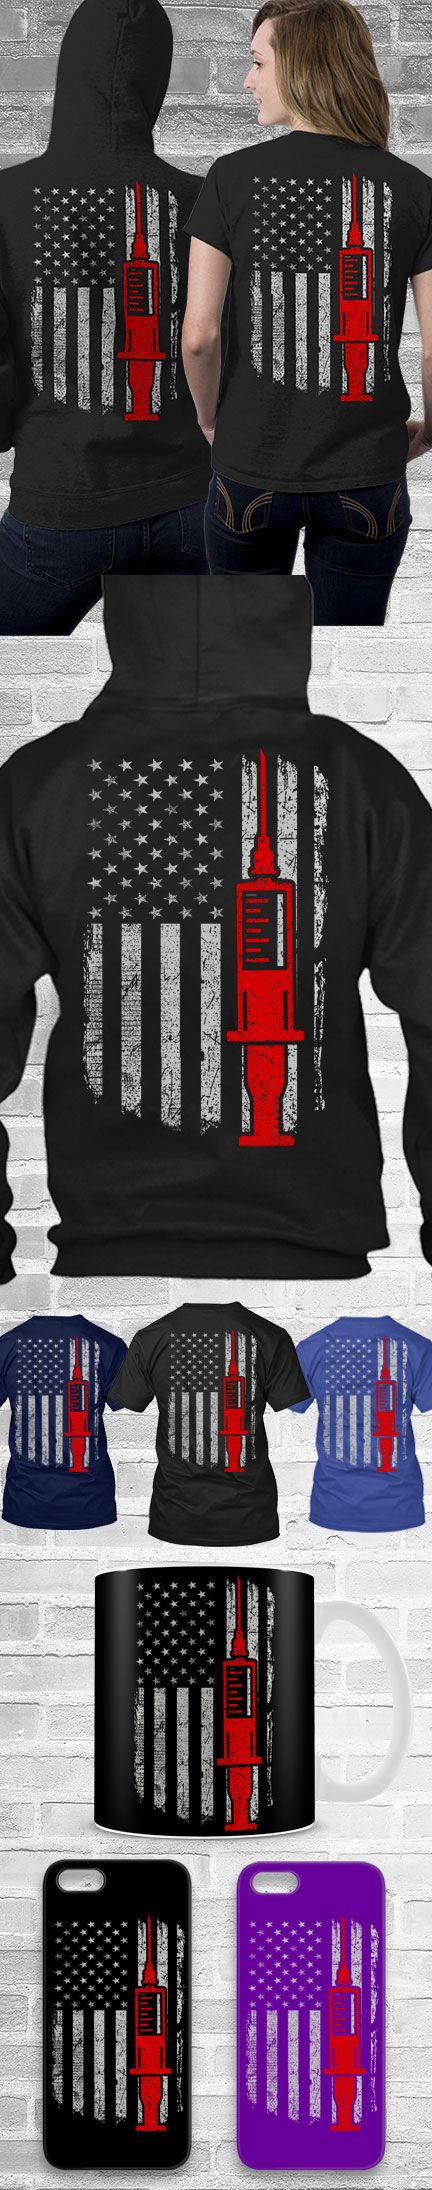 Nurse USA Flag Shirts! Click The Image To Buy It Now or Tag Someone You Want To Buy This For.  #nurse